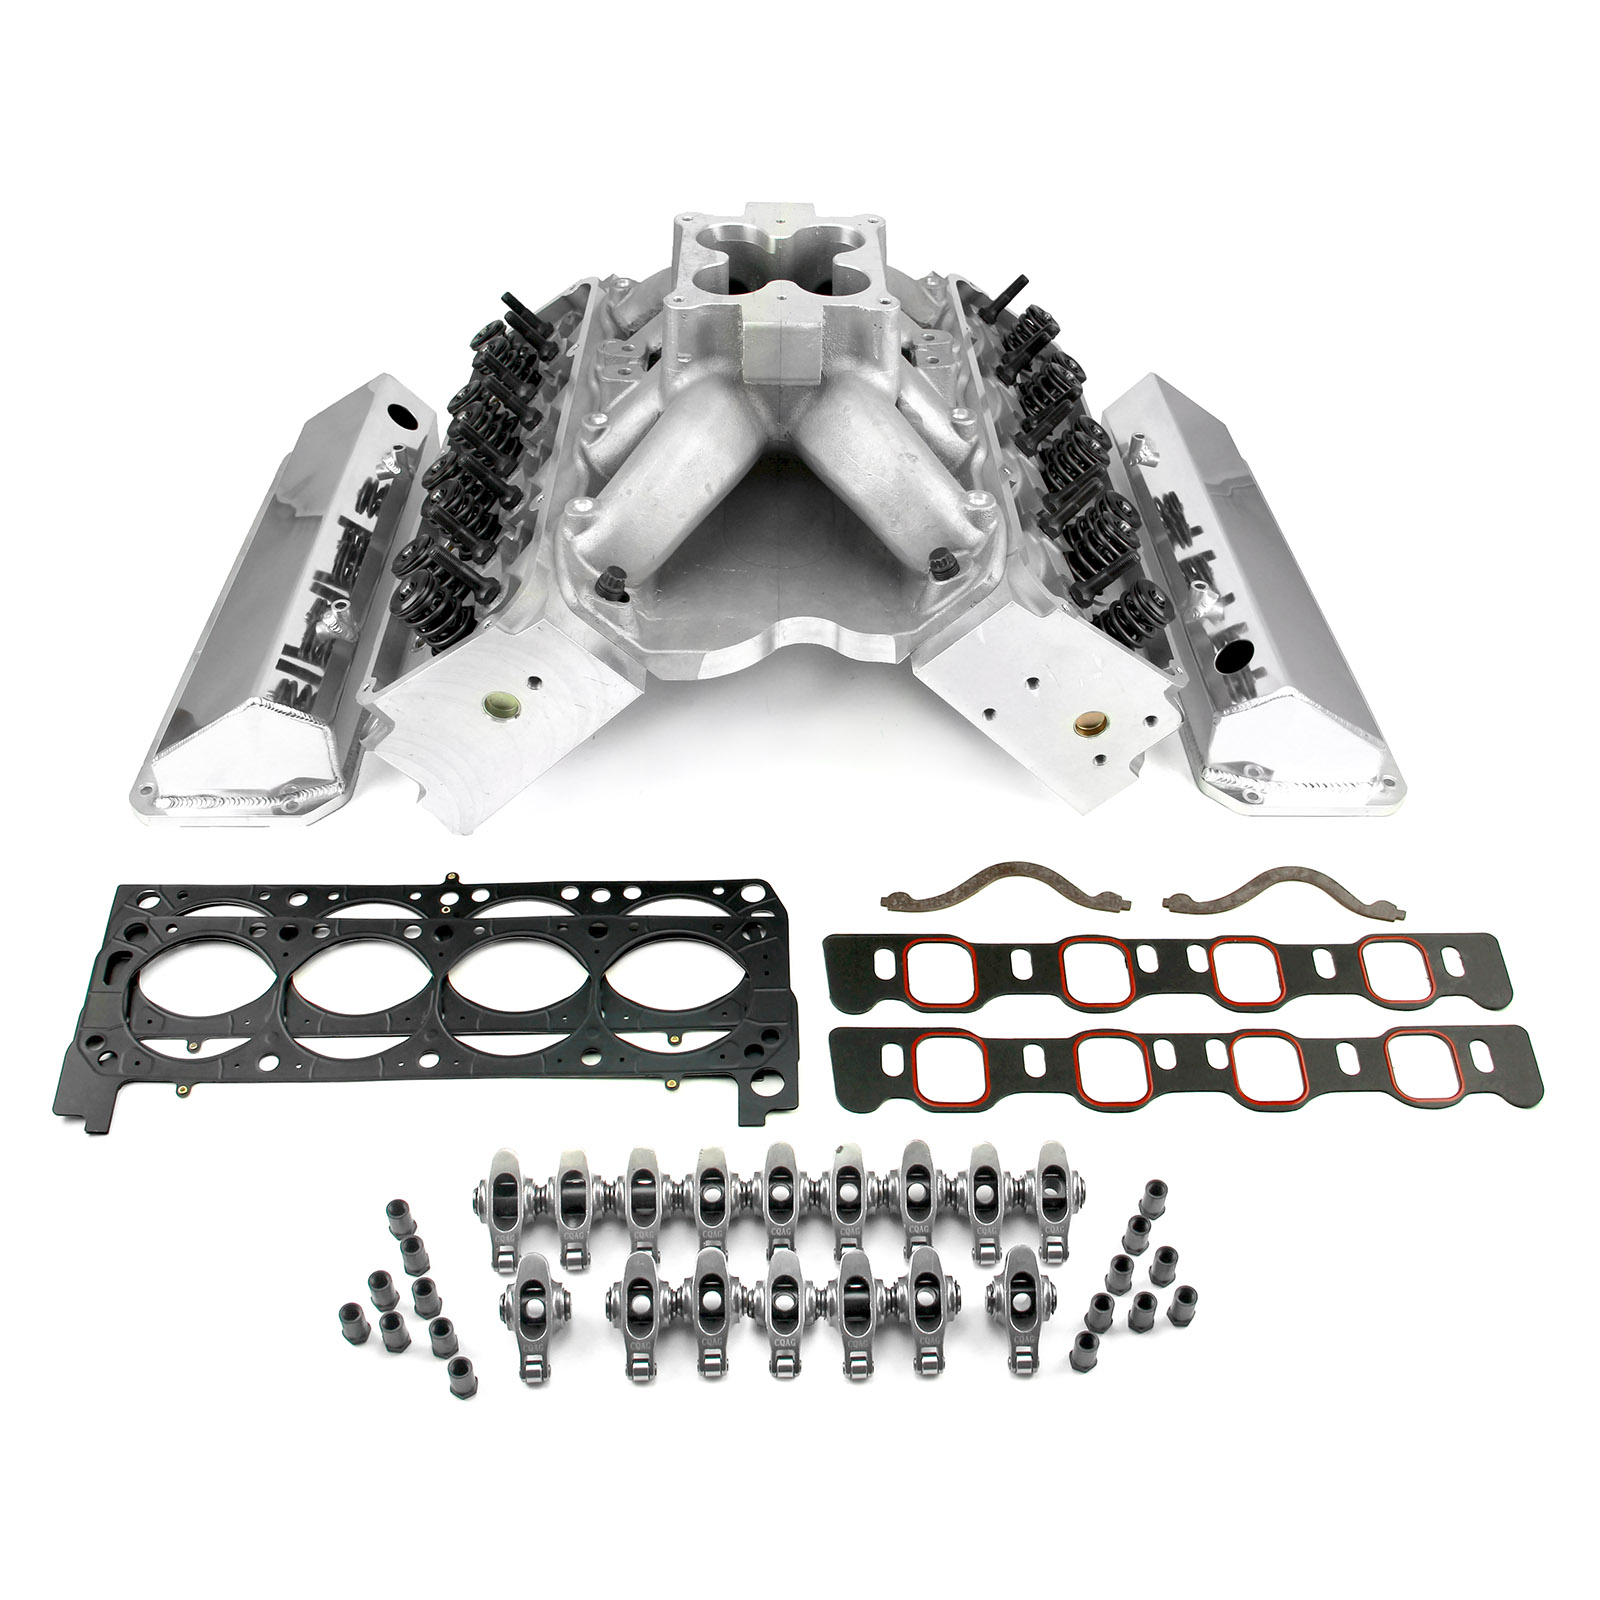 Ford 351C 9.2 Deck Fusion Manifold Hyd FT Cylinder Head Top End Engine Combo Kit